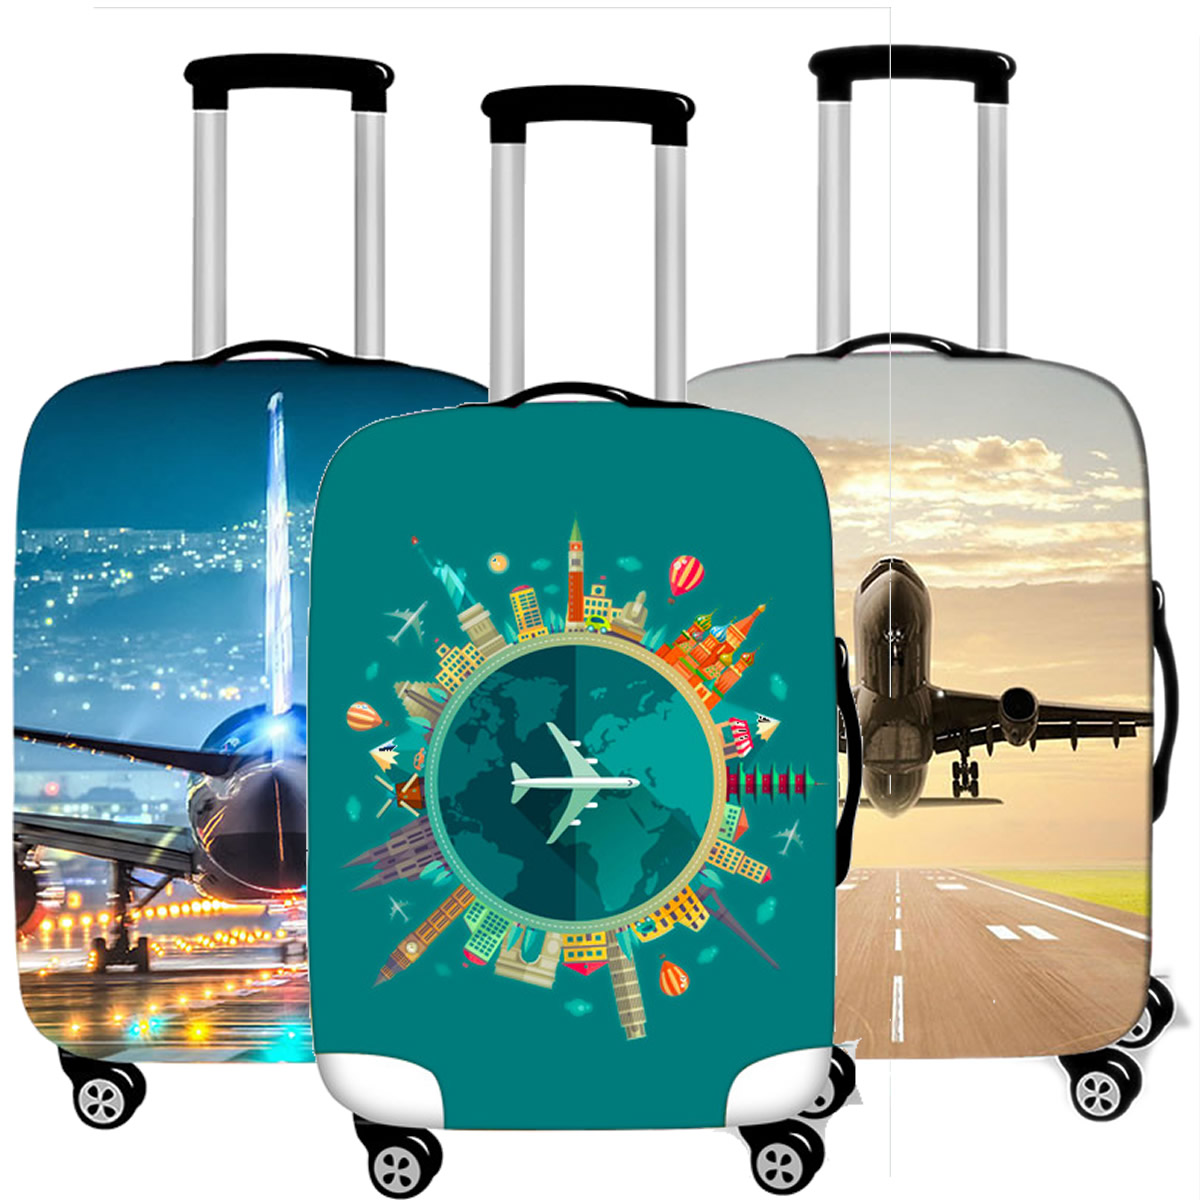 Creative Aircraft Suitcase Case Protective Cover Travel Luggage Dust Cover Accessories Suitcases Organizer 18-32 Xl Inch